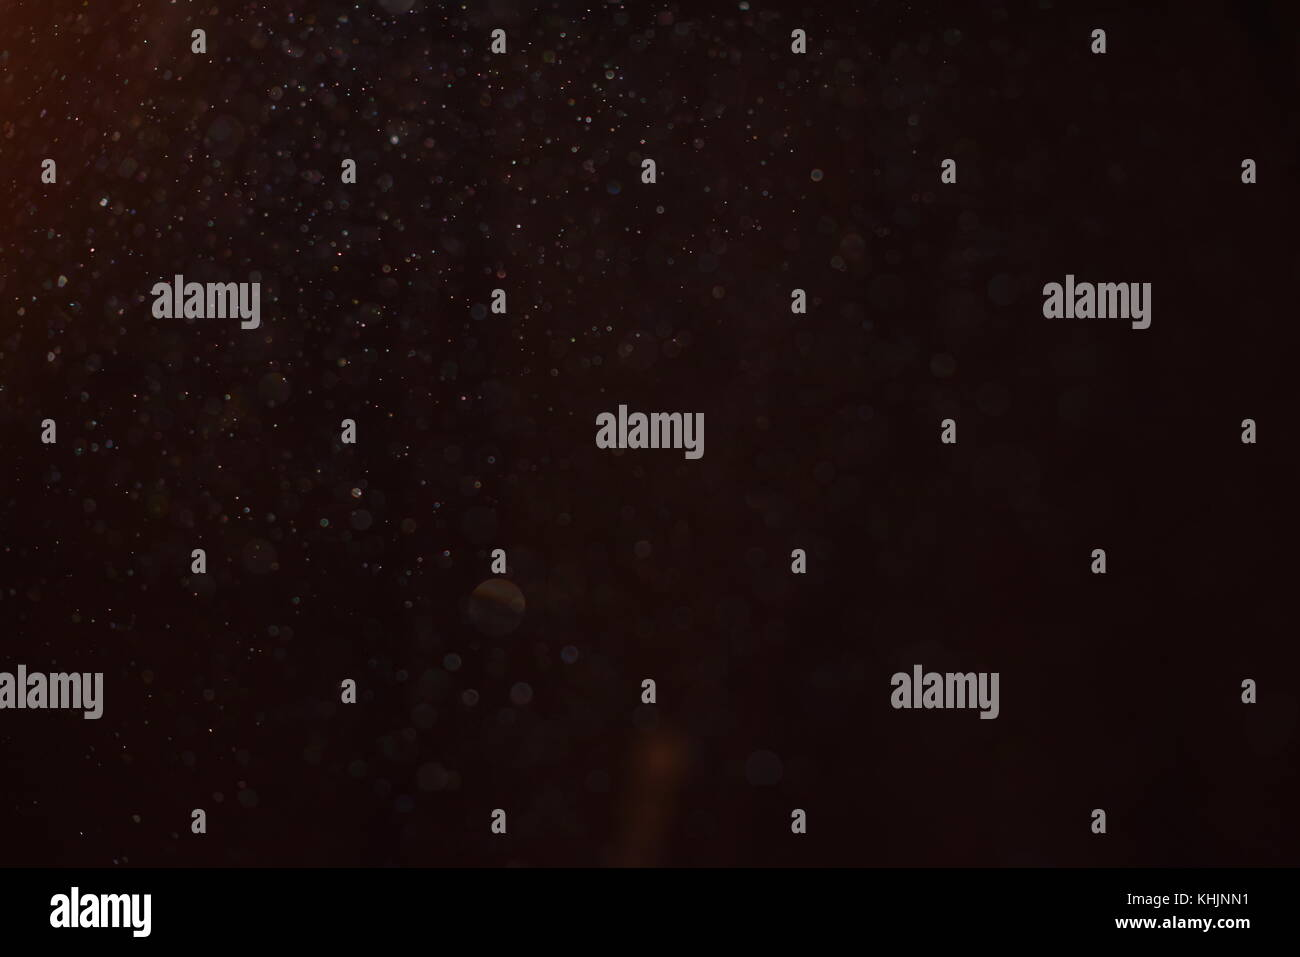 Speck Of Dust Stock Photos & Speck Of Dust Stock Images - Alamy